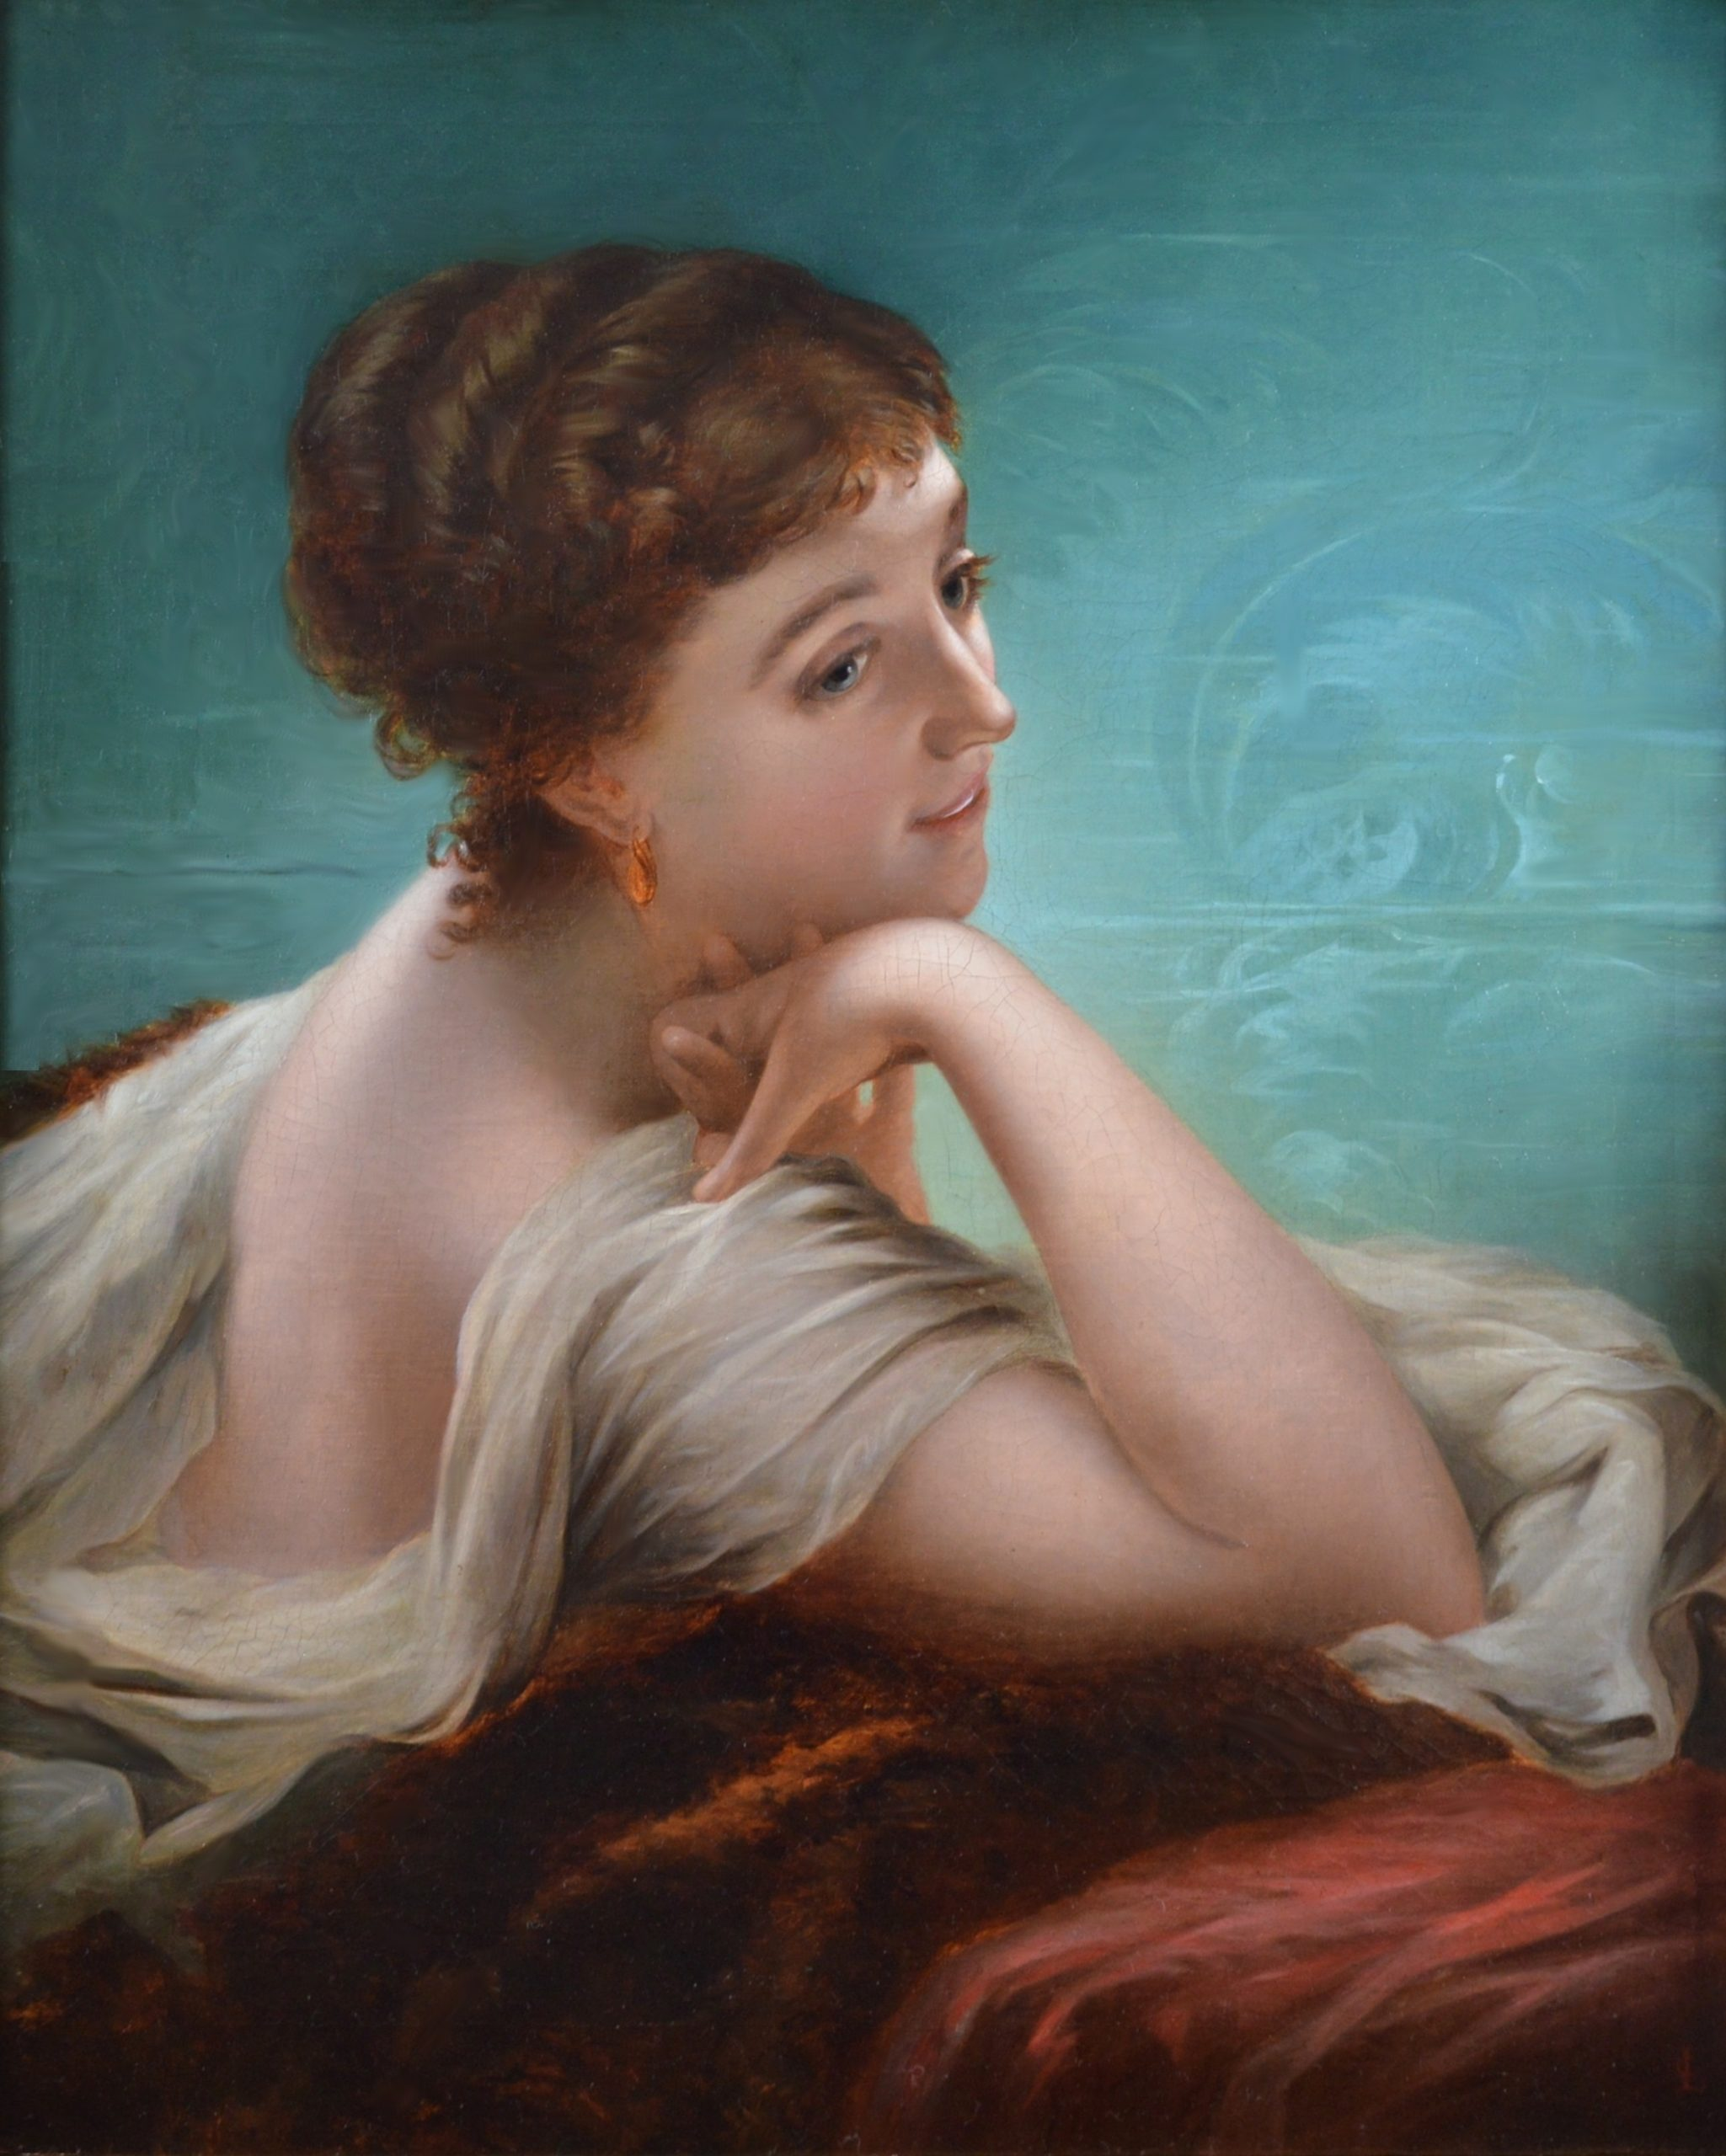 Daydreams - 19th Century Oil Painting Portrait of Victorian Society Beauty Image